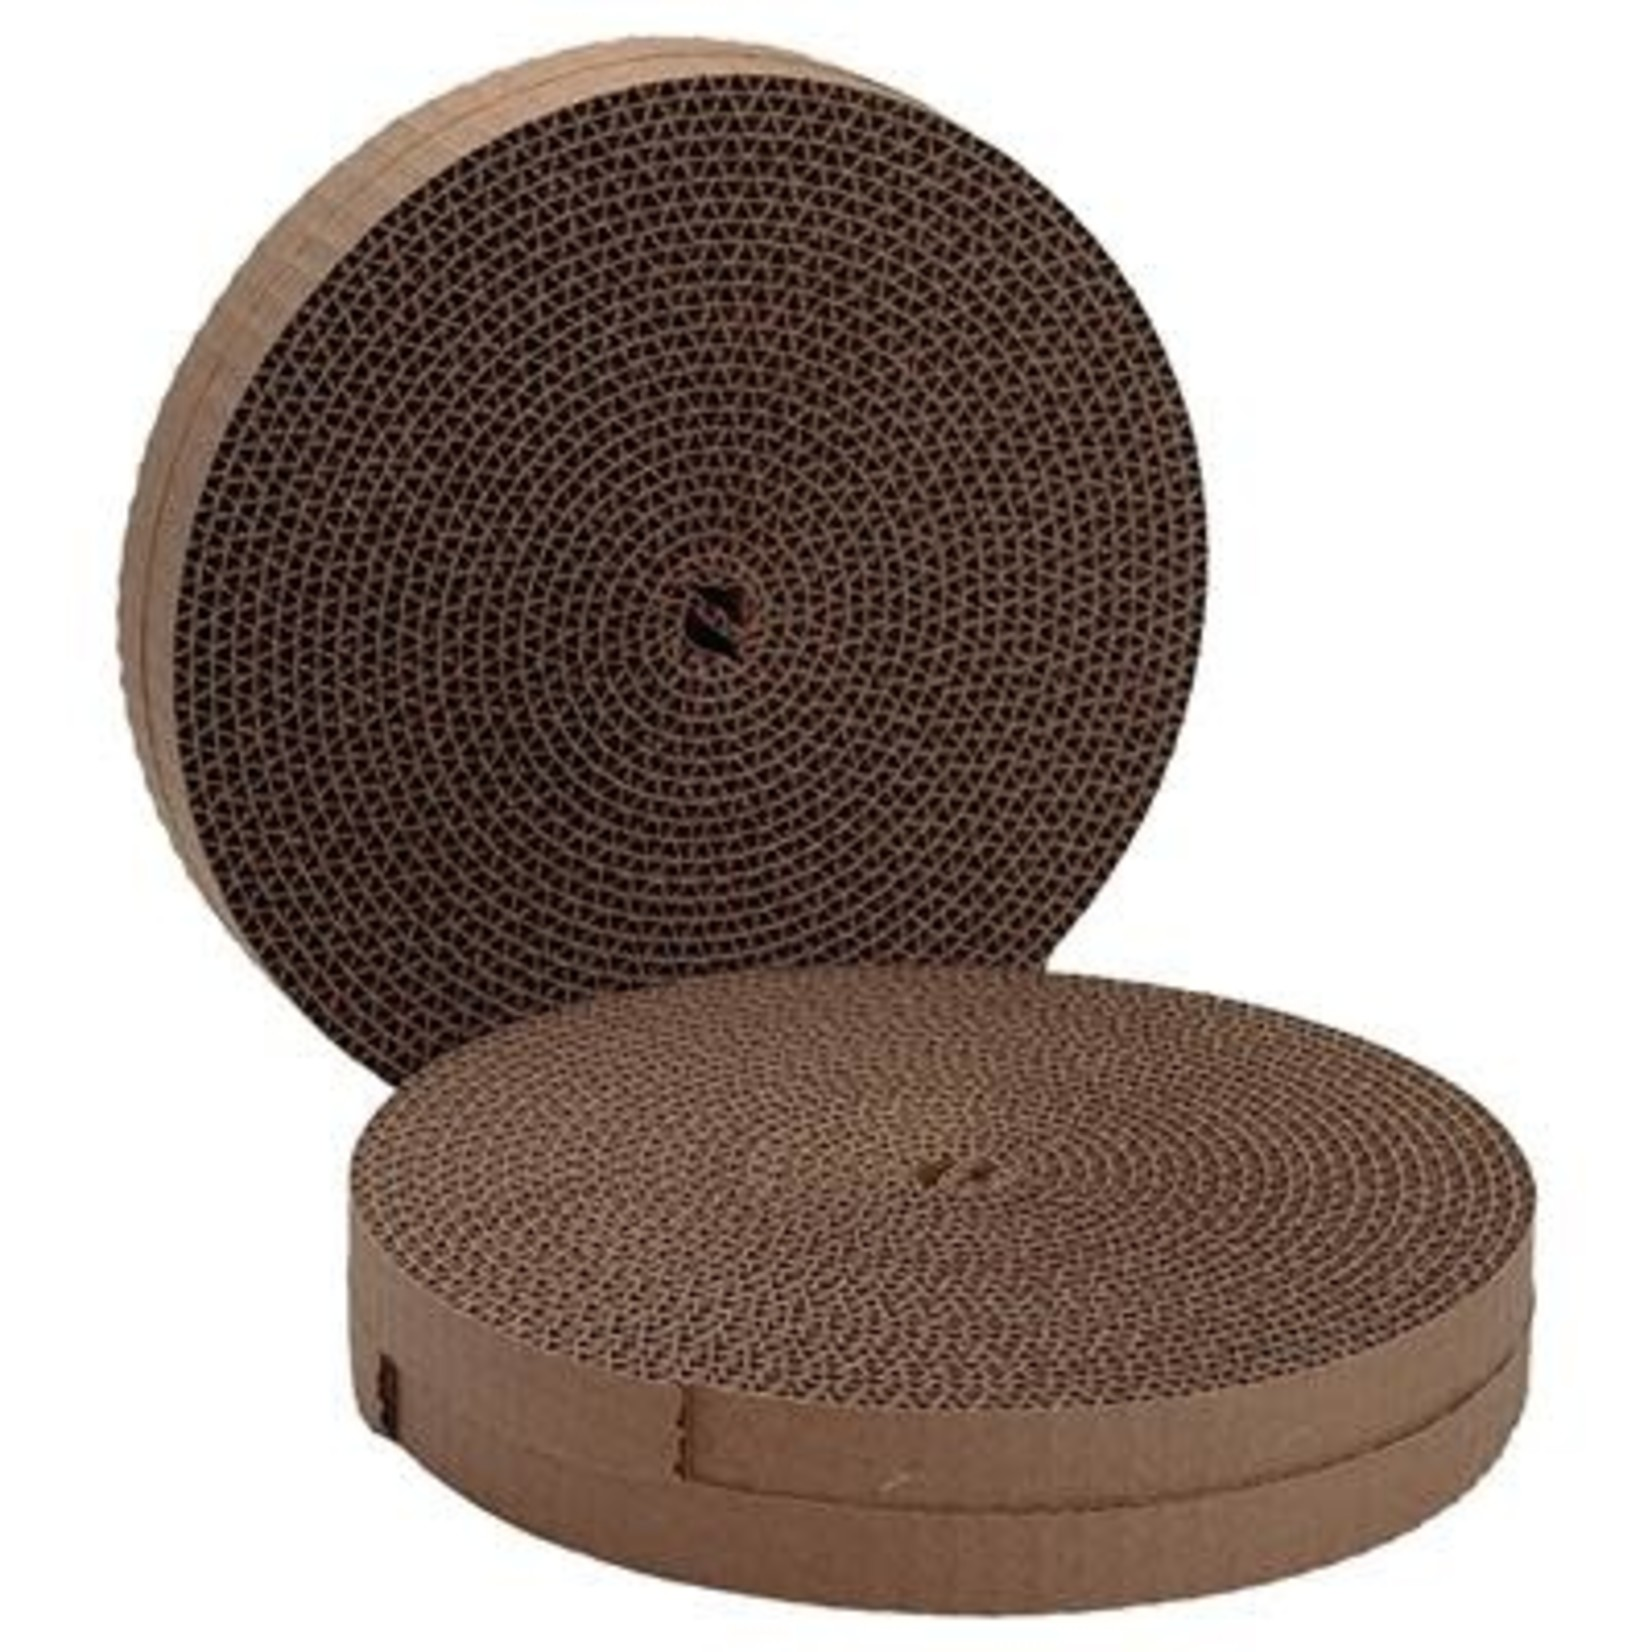 Turbo Scratcher Replacement Pads 2pk